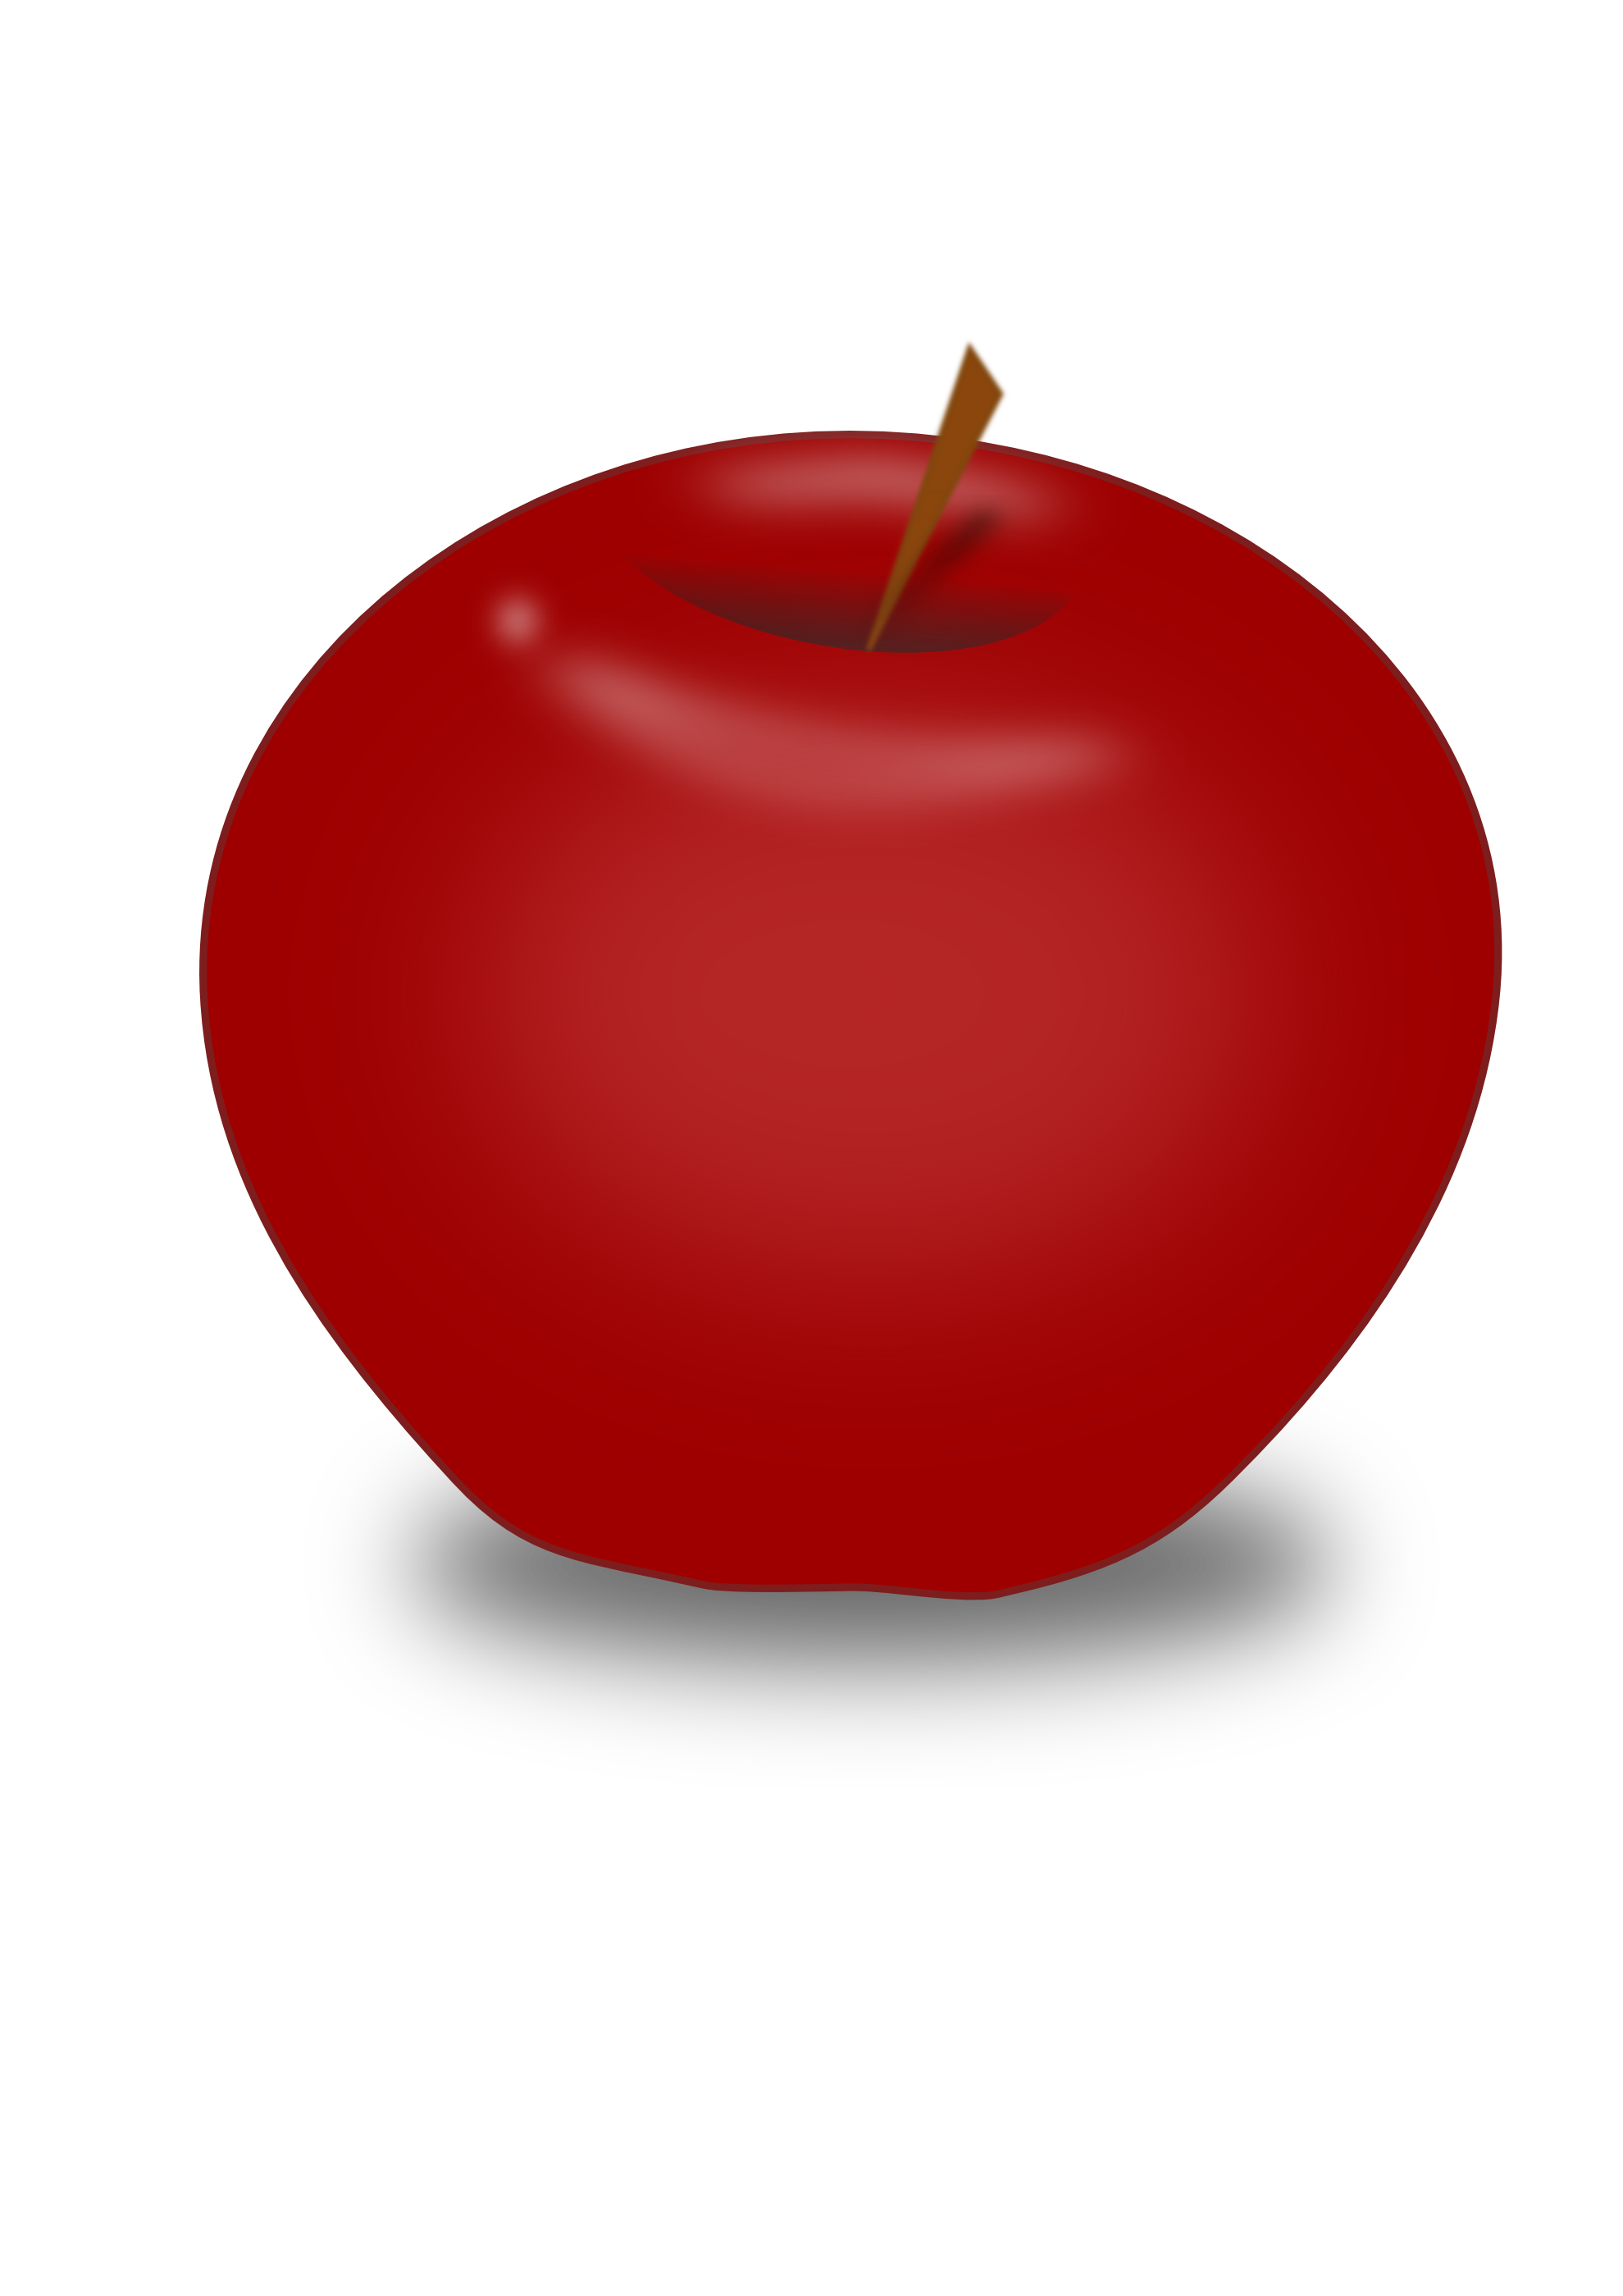 Apple clip art png. Red image purepng free